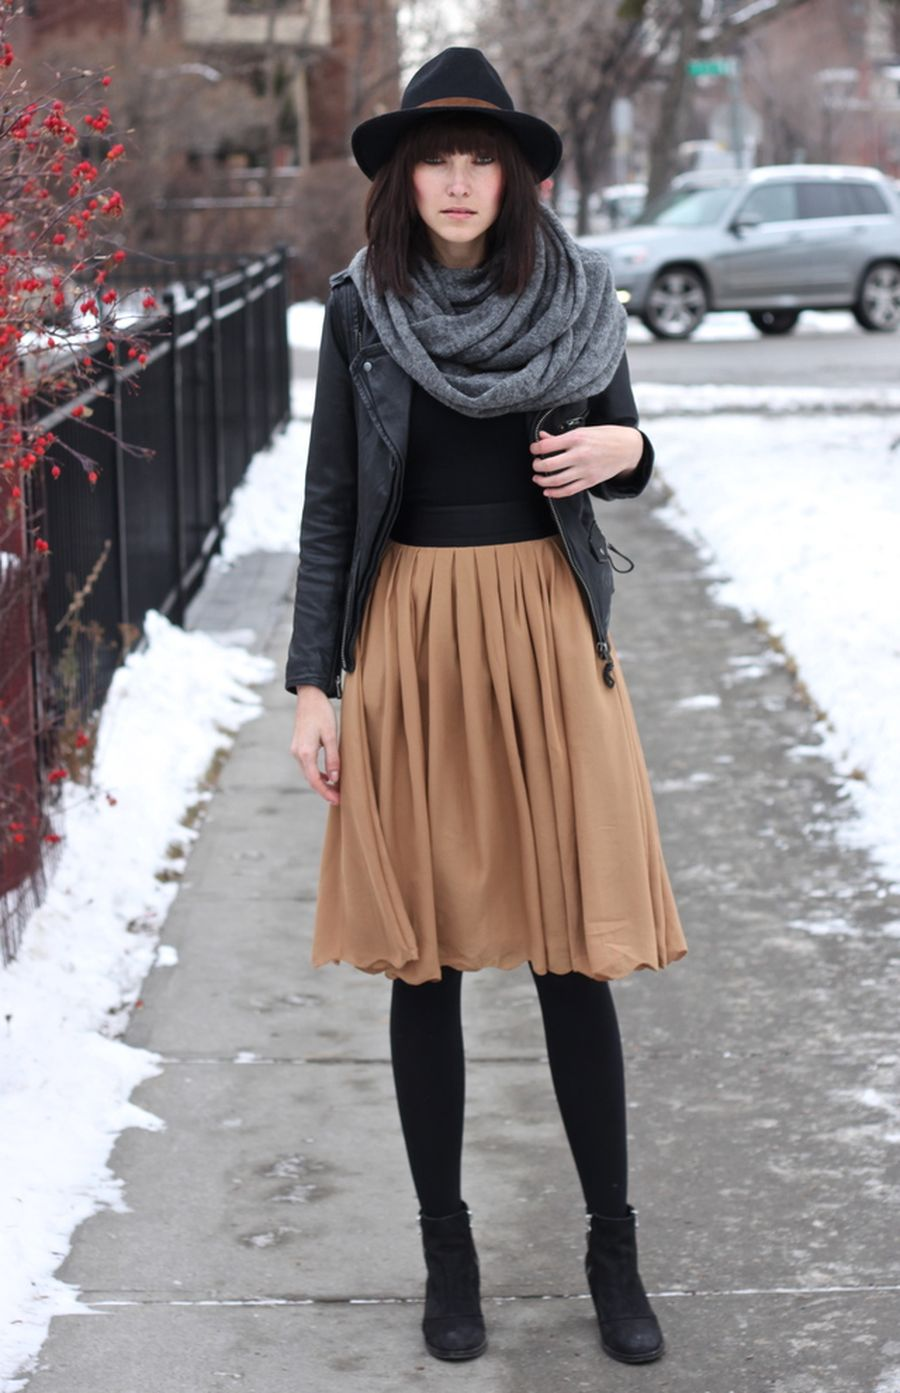 Skirt trends ideas for winter outfits this year 65